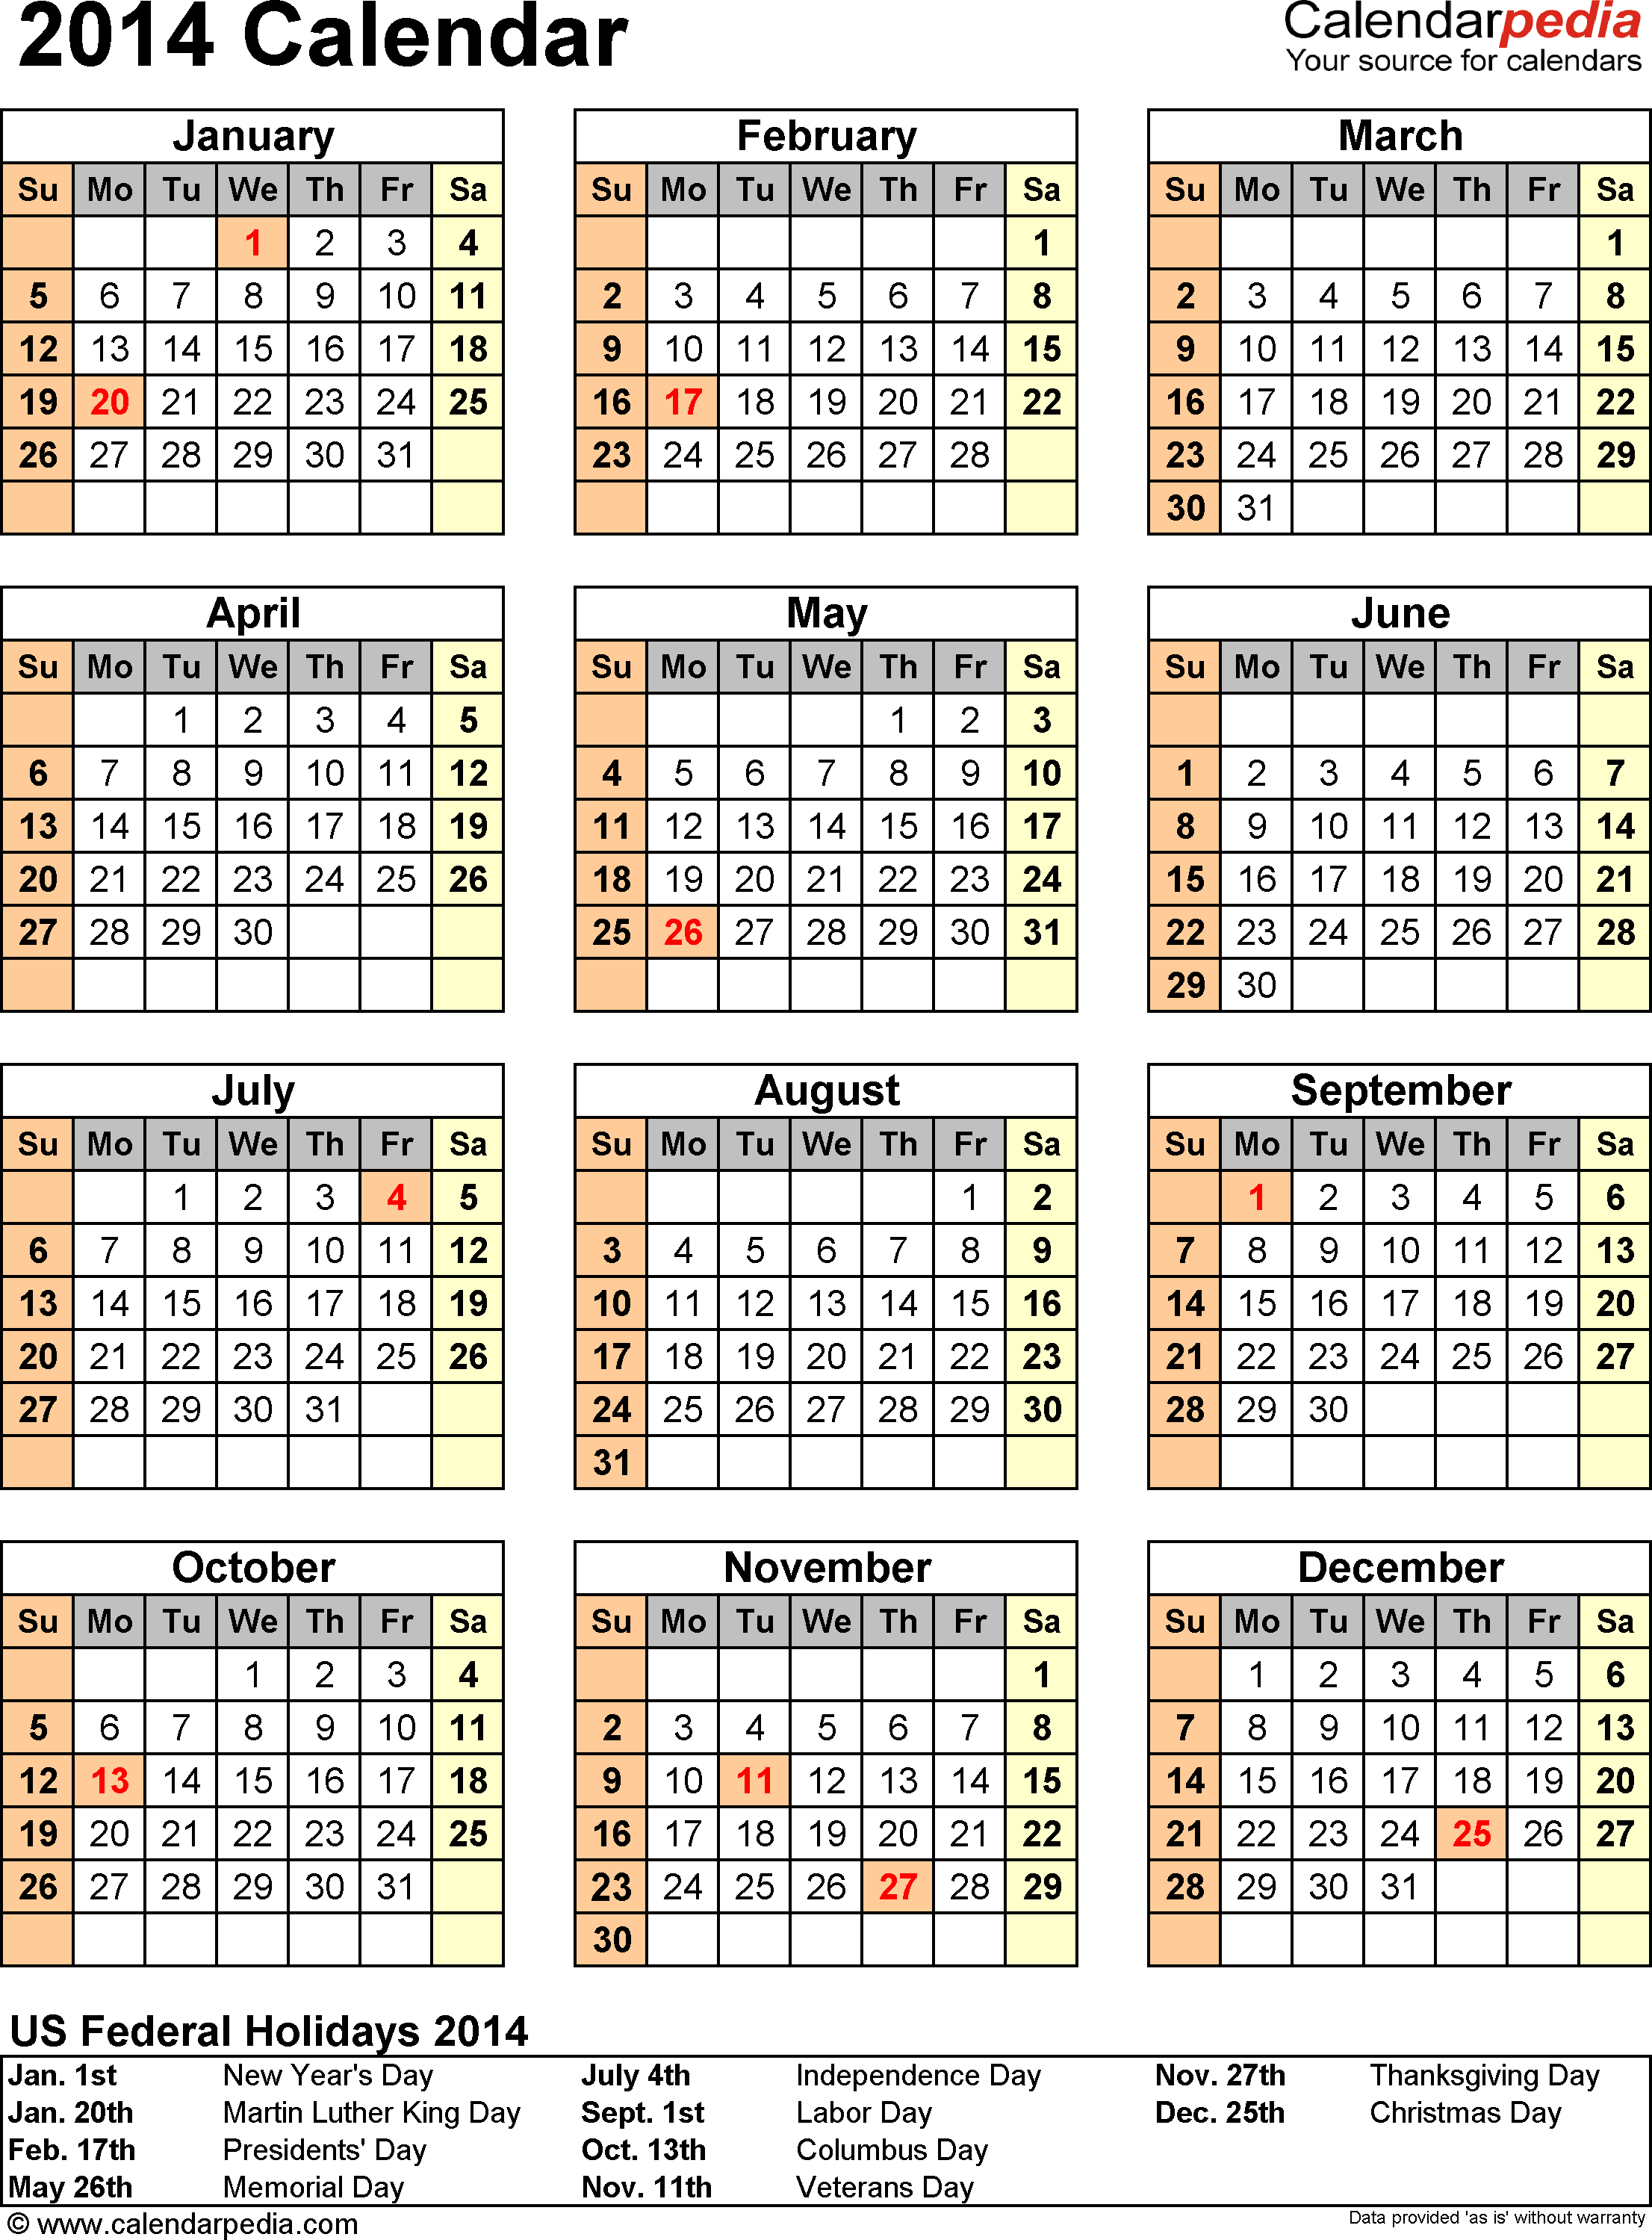 Download Template 13: 2014 Calendar for PDF, portrait, 1 page